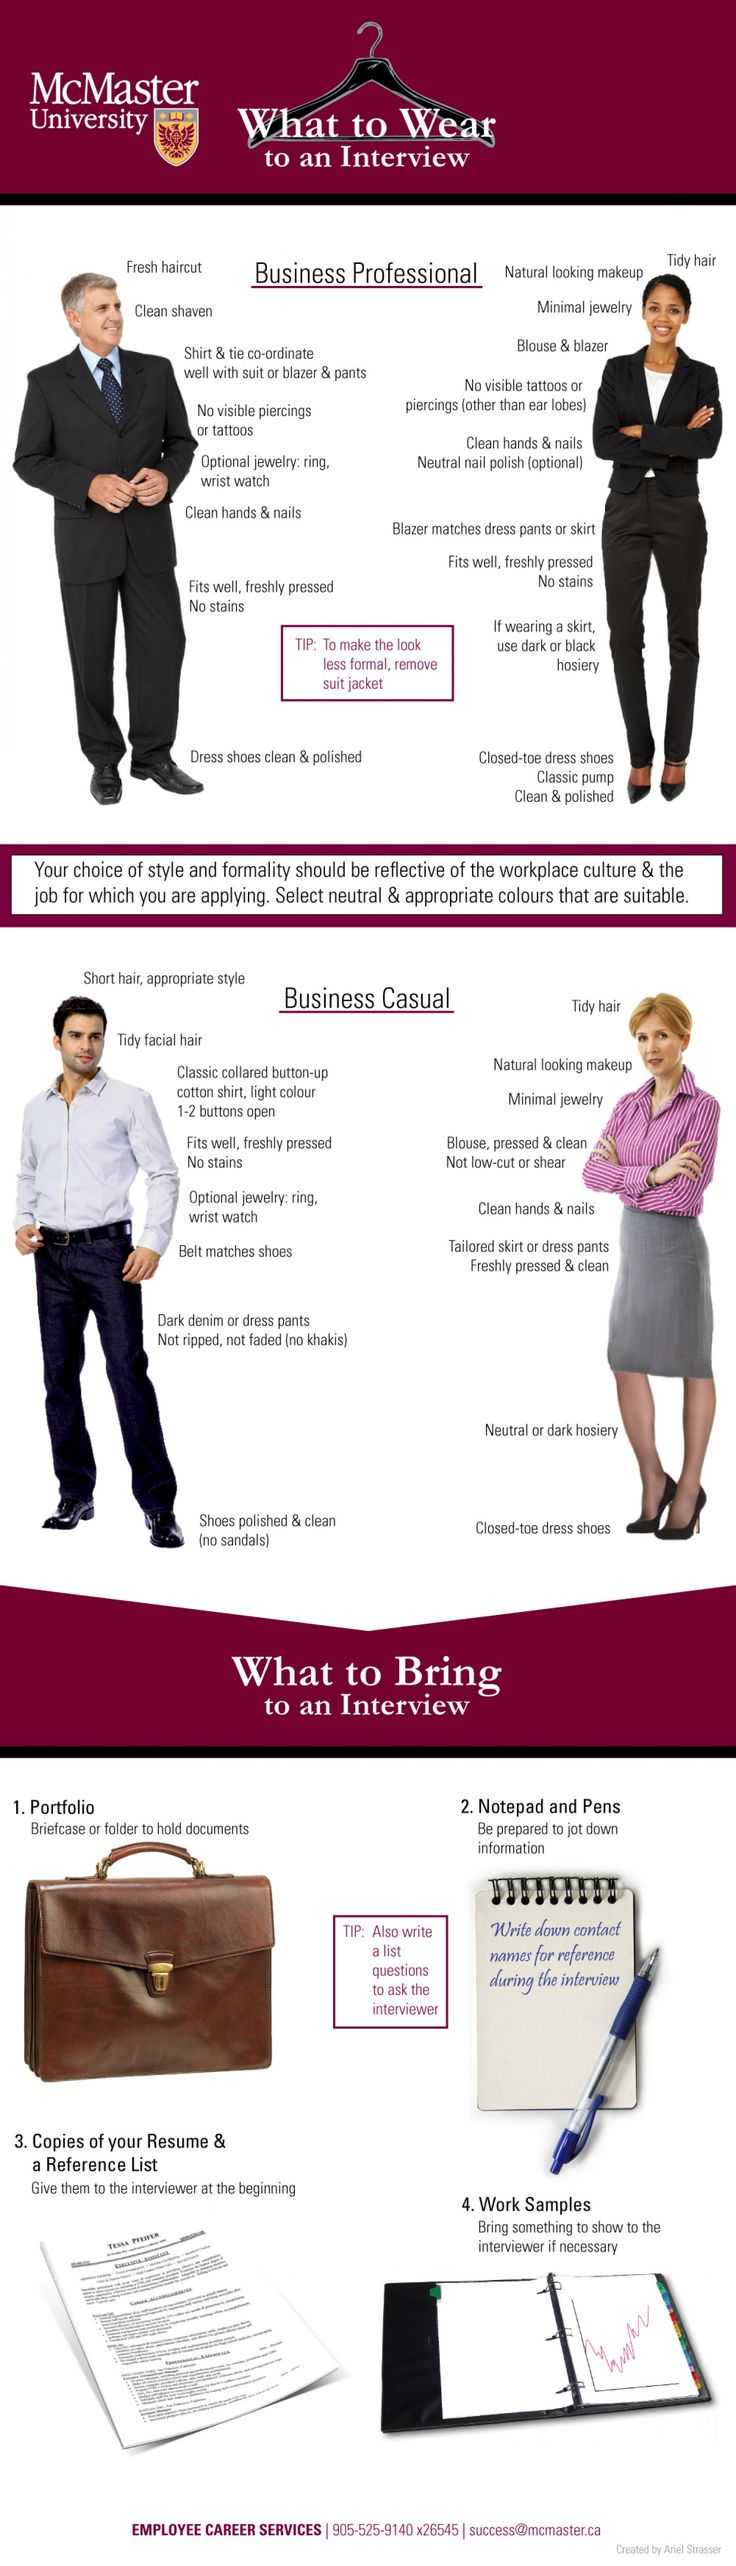 What to Wear and Bring to a Job Interview Infographic This is from my Dad's University!